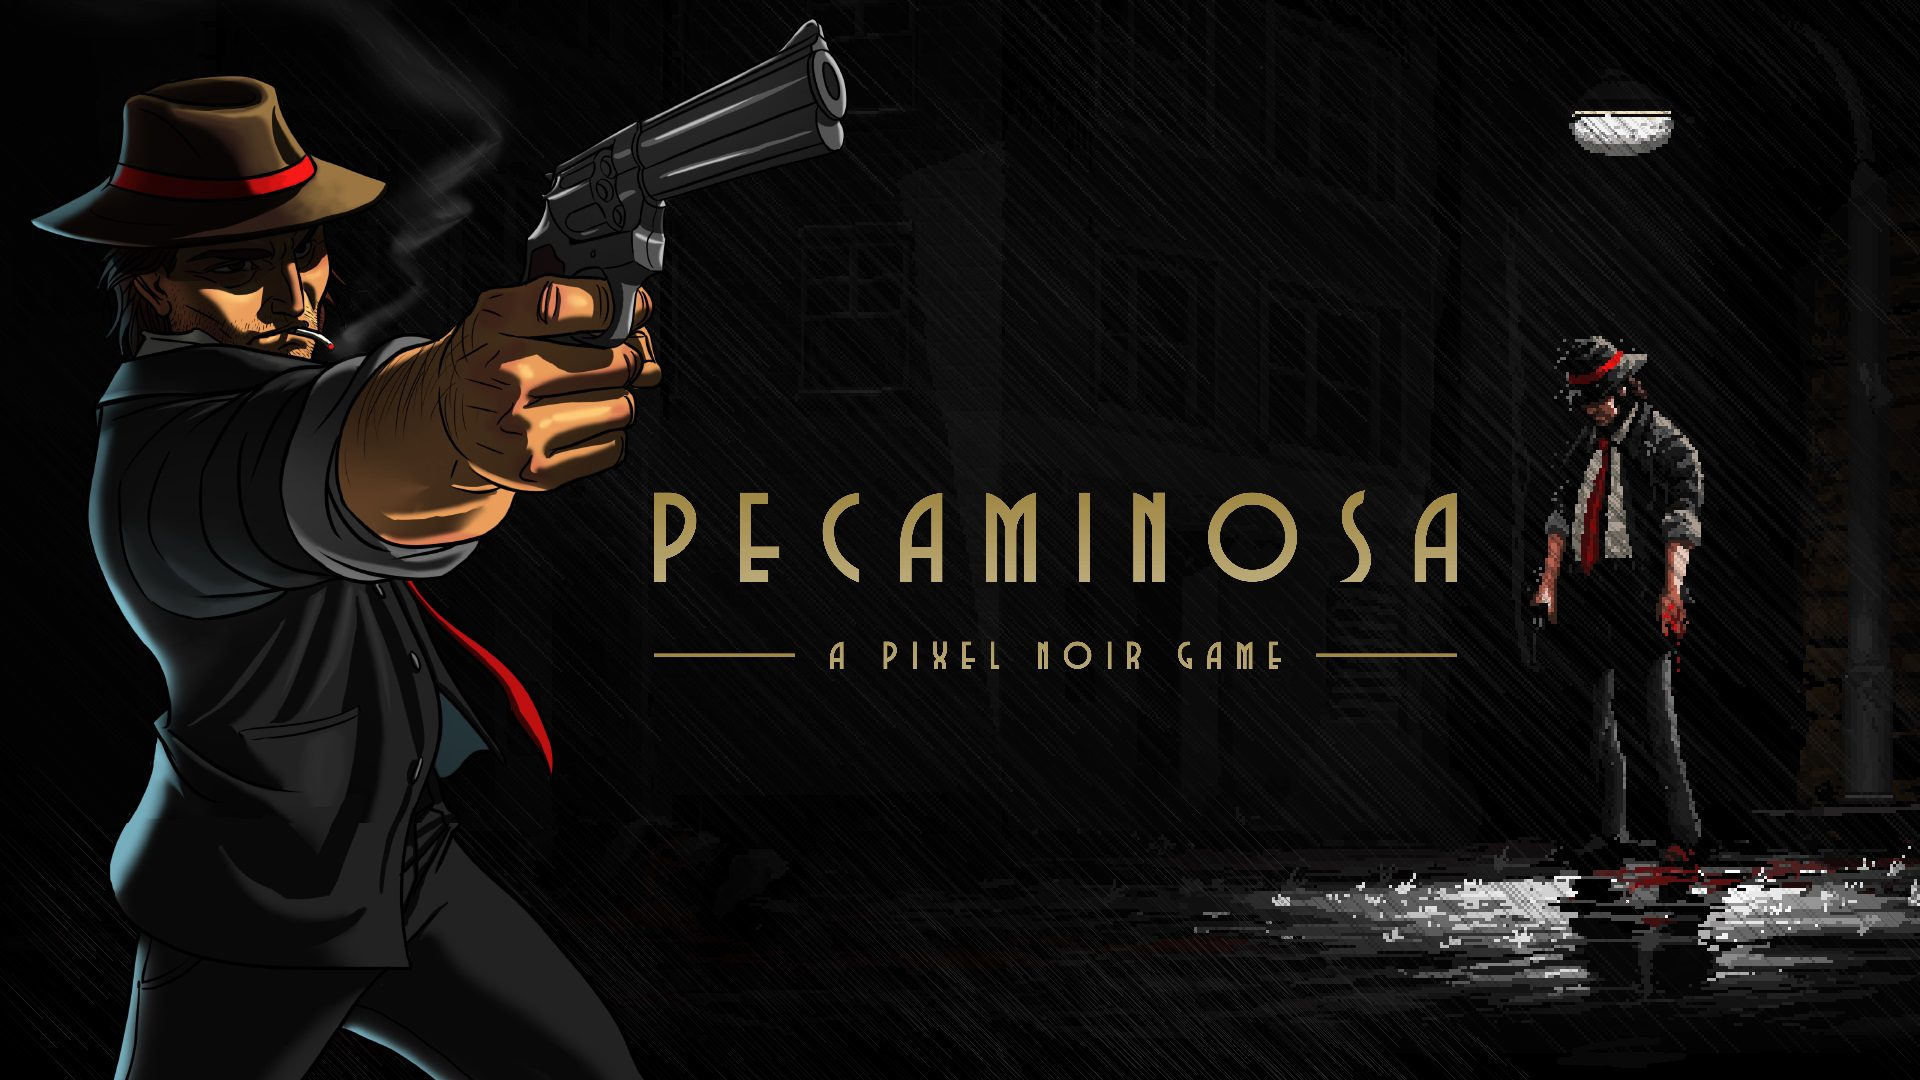 Pecaminosa Cover Art, showing Johnny Souza in two art styles